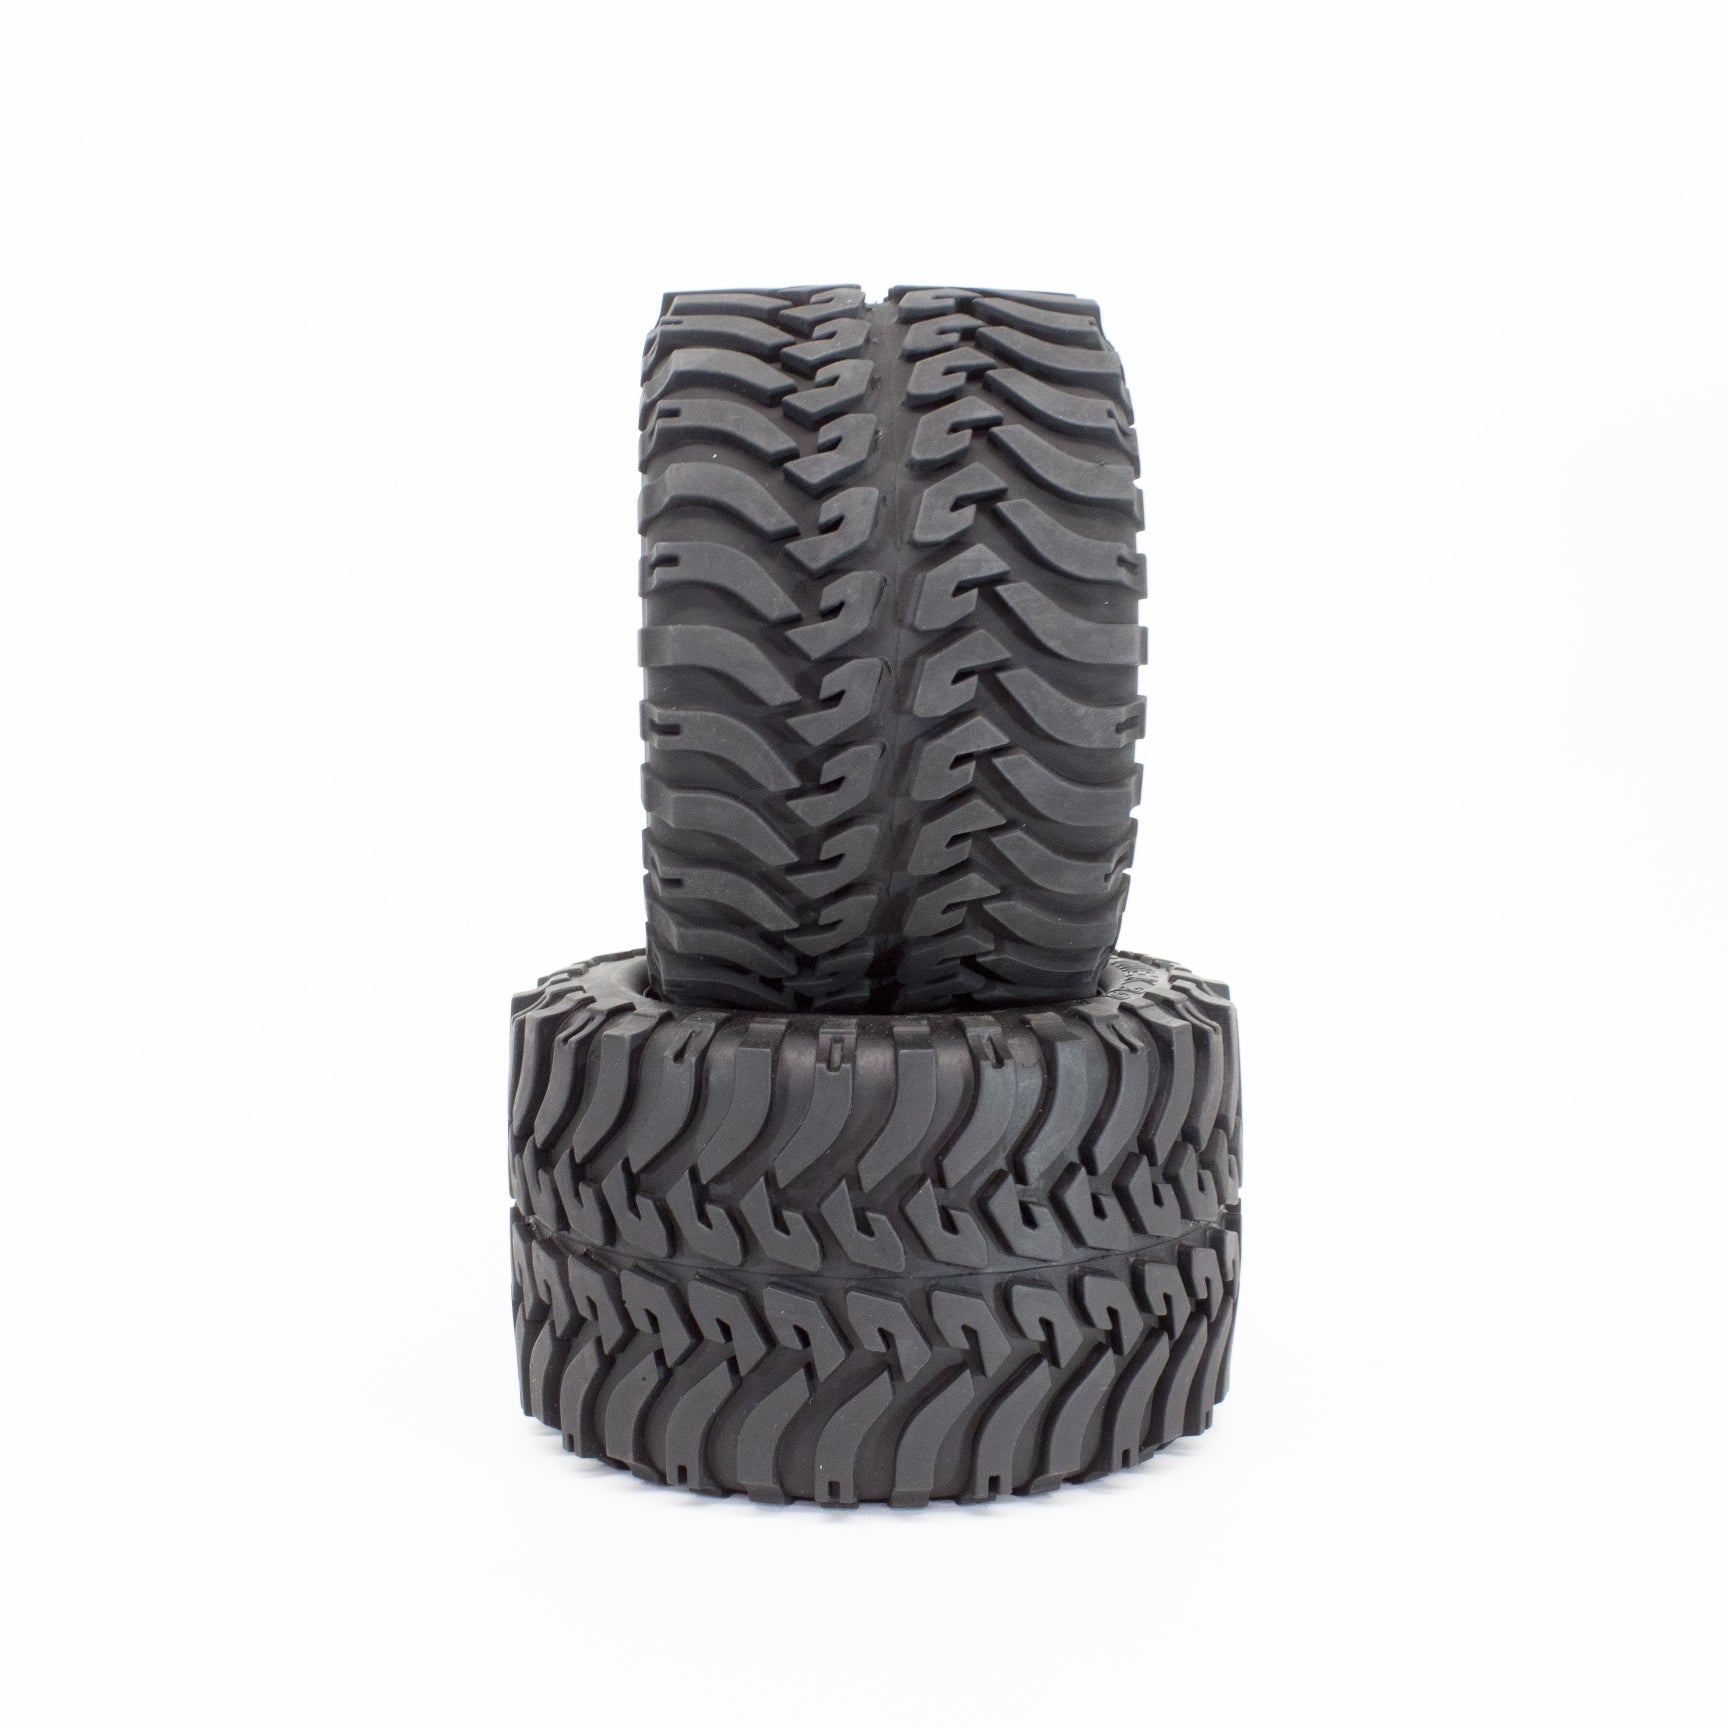 IMEX 3.8 All-T Tires (1 Pair)